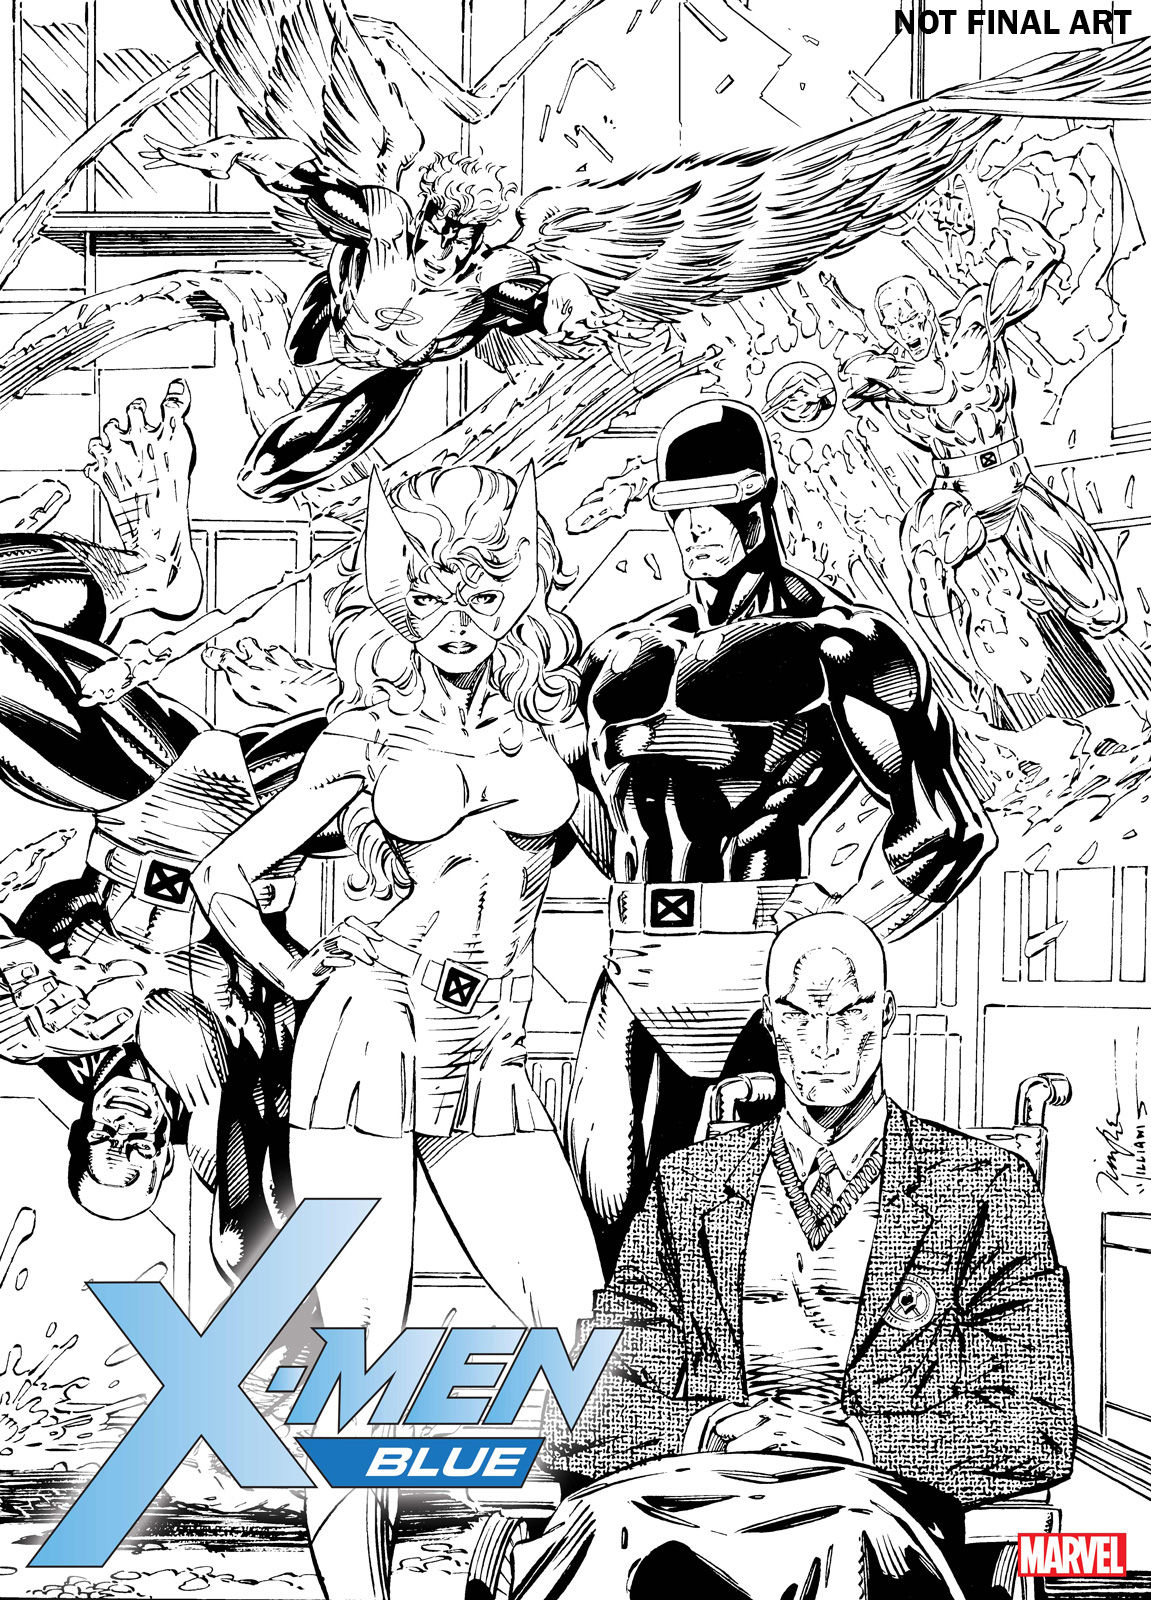 The Original Five Make Their Mark In X-Men Blue #1